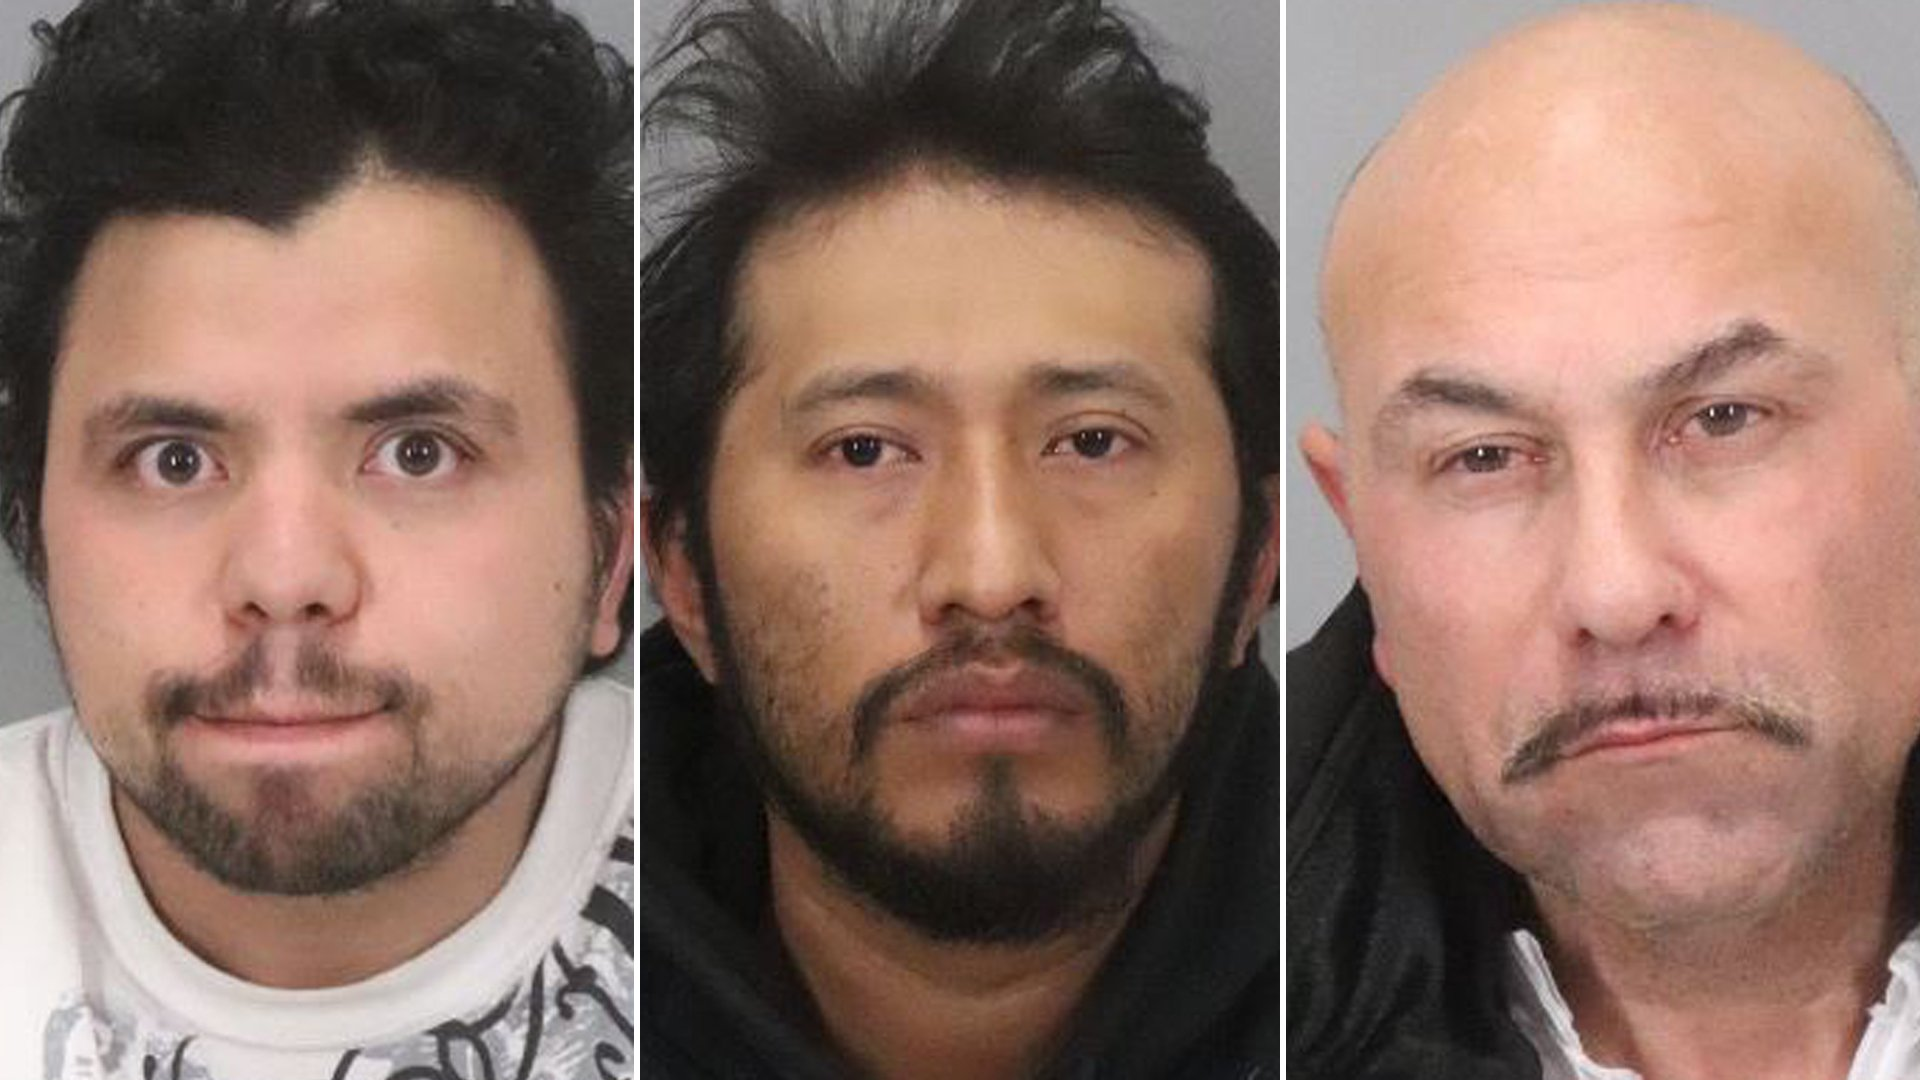 Hediberto Gonzalez Avarenga, Antonio Quirino Salvador and Albert Thomas Vasquez appear in booking photos released by the San Jose Police Department on Jan. 16, 2020.